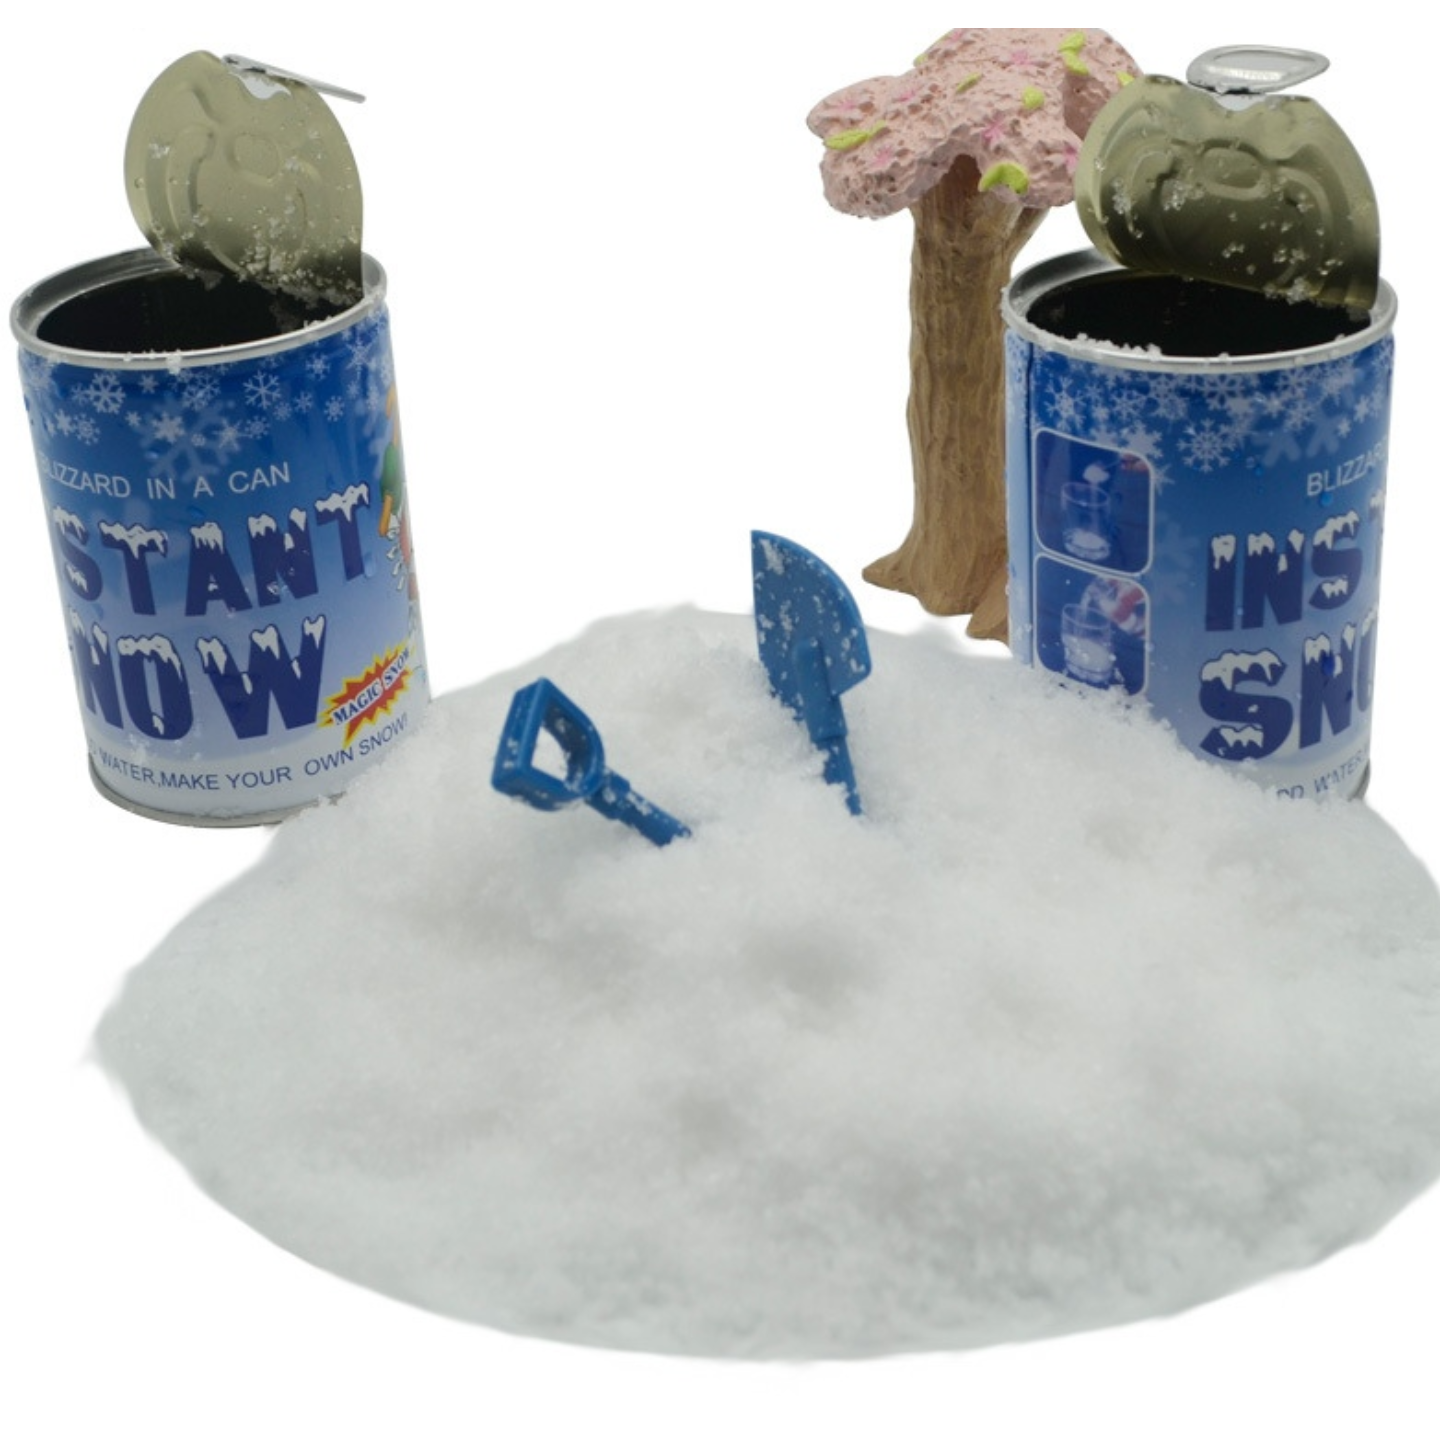 Party Novelty Fake Snow Making Science Experiment in a Can